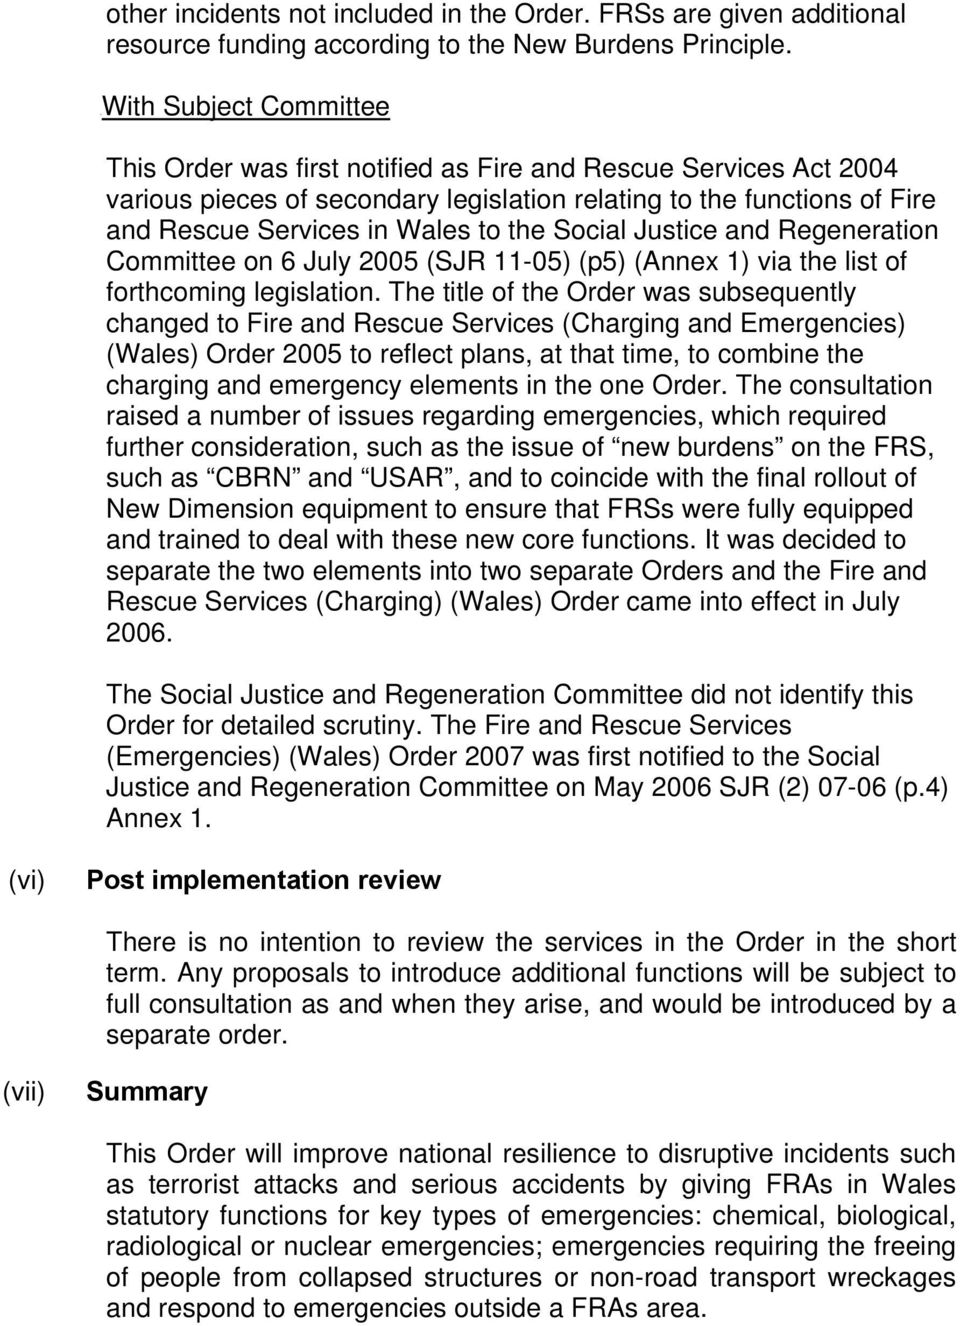 the Social Justice and Regeneration Committee on 6 July 2005 (SJR 11-05) (p5) (Annex 1) via the list of forthcoming legislation.